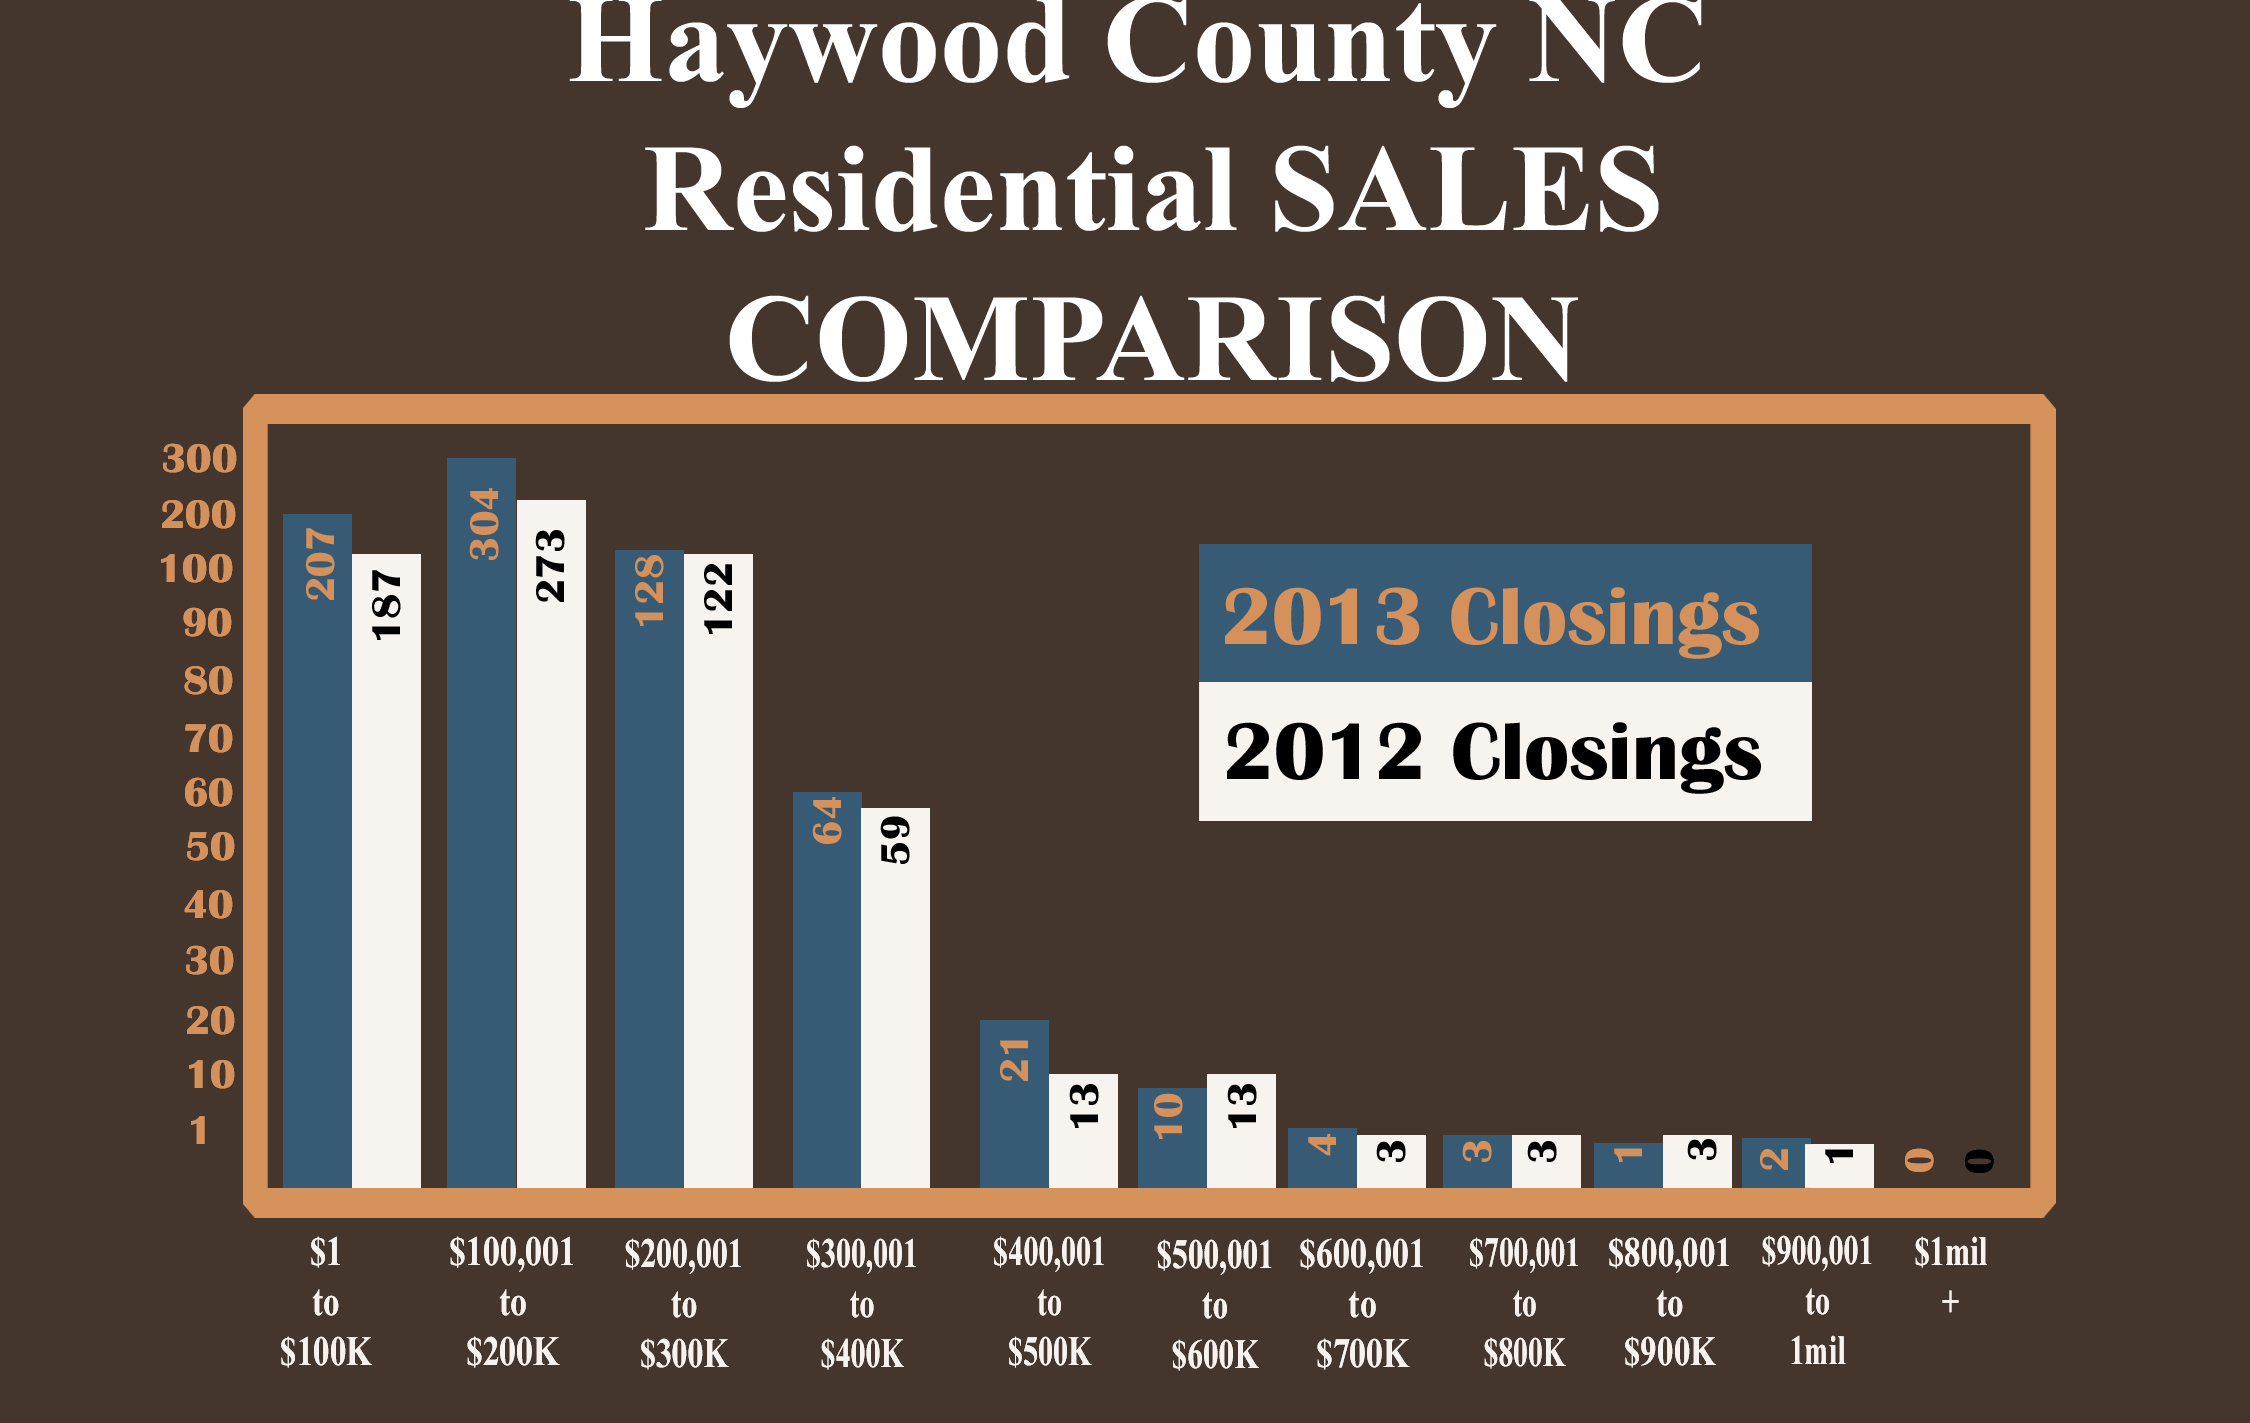 2013 Haywood County NC Residential sales comparison from 2012